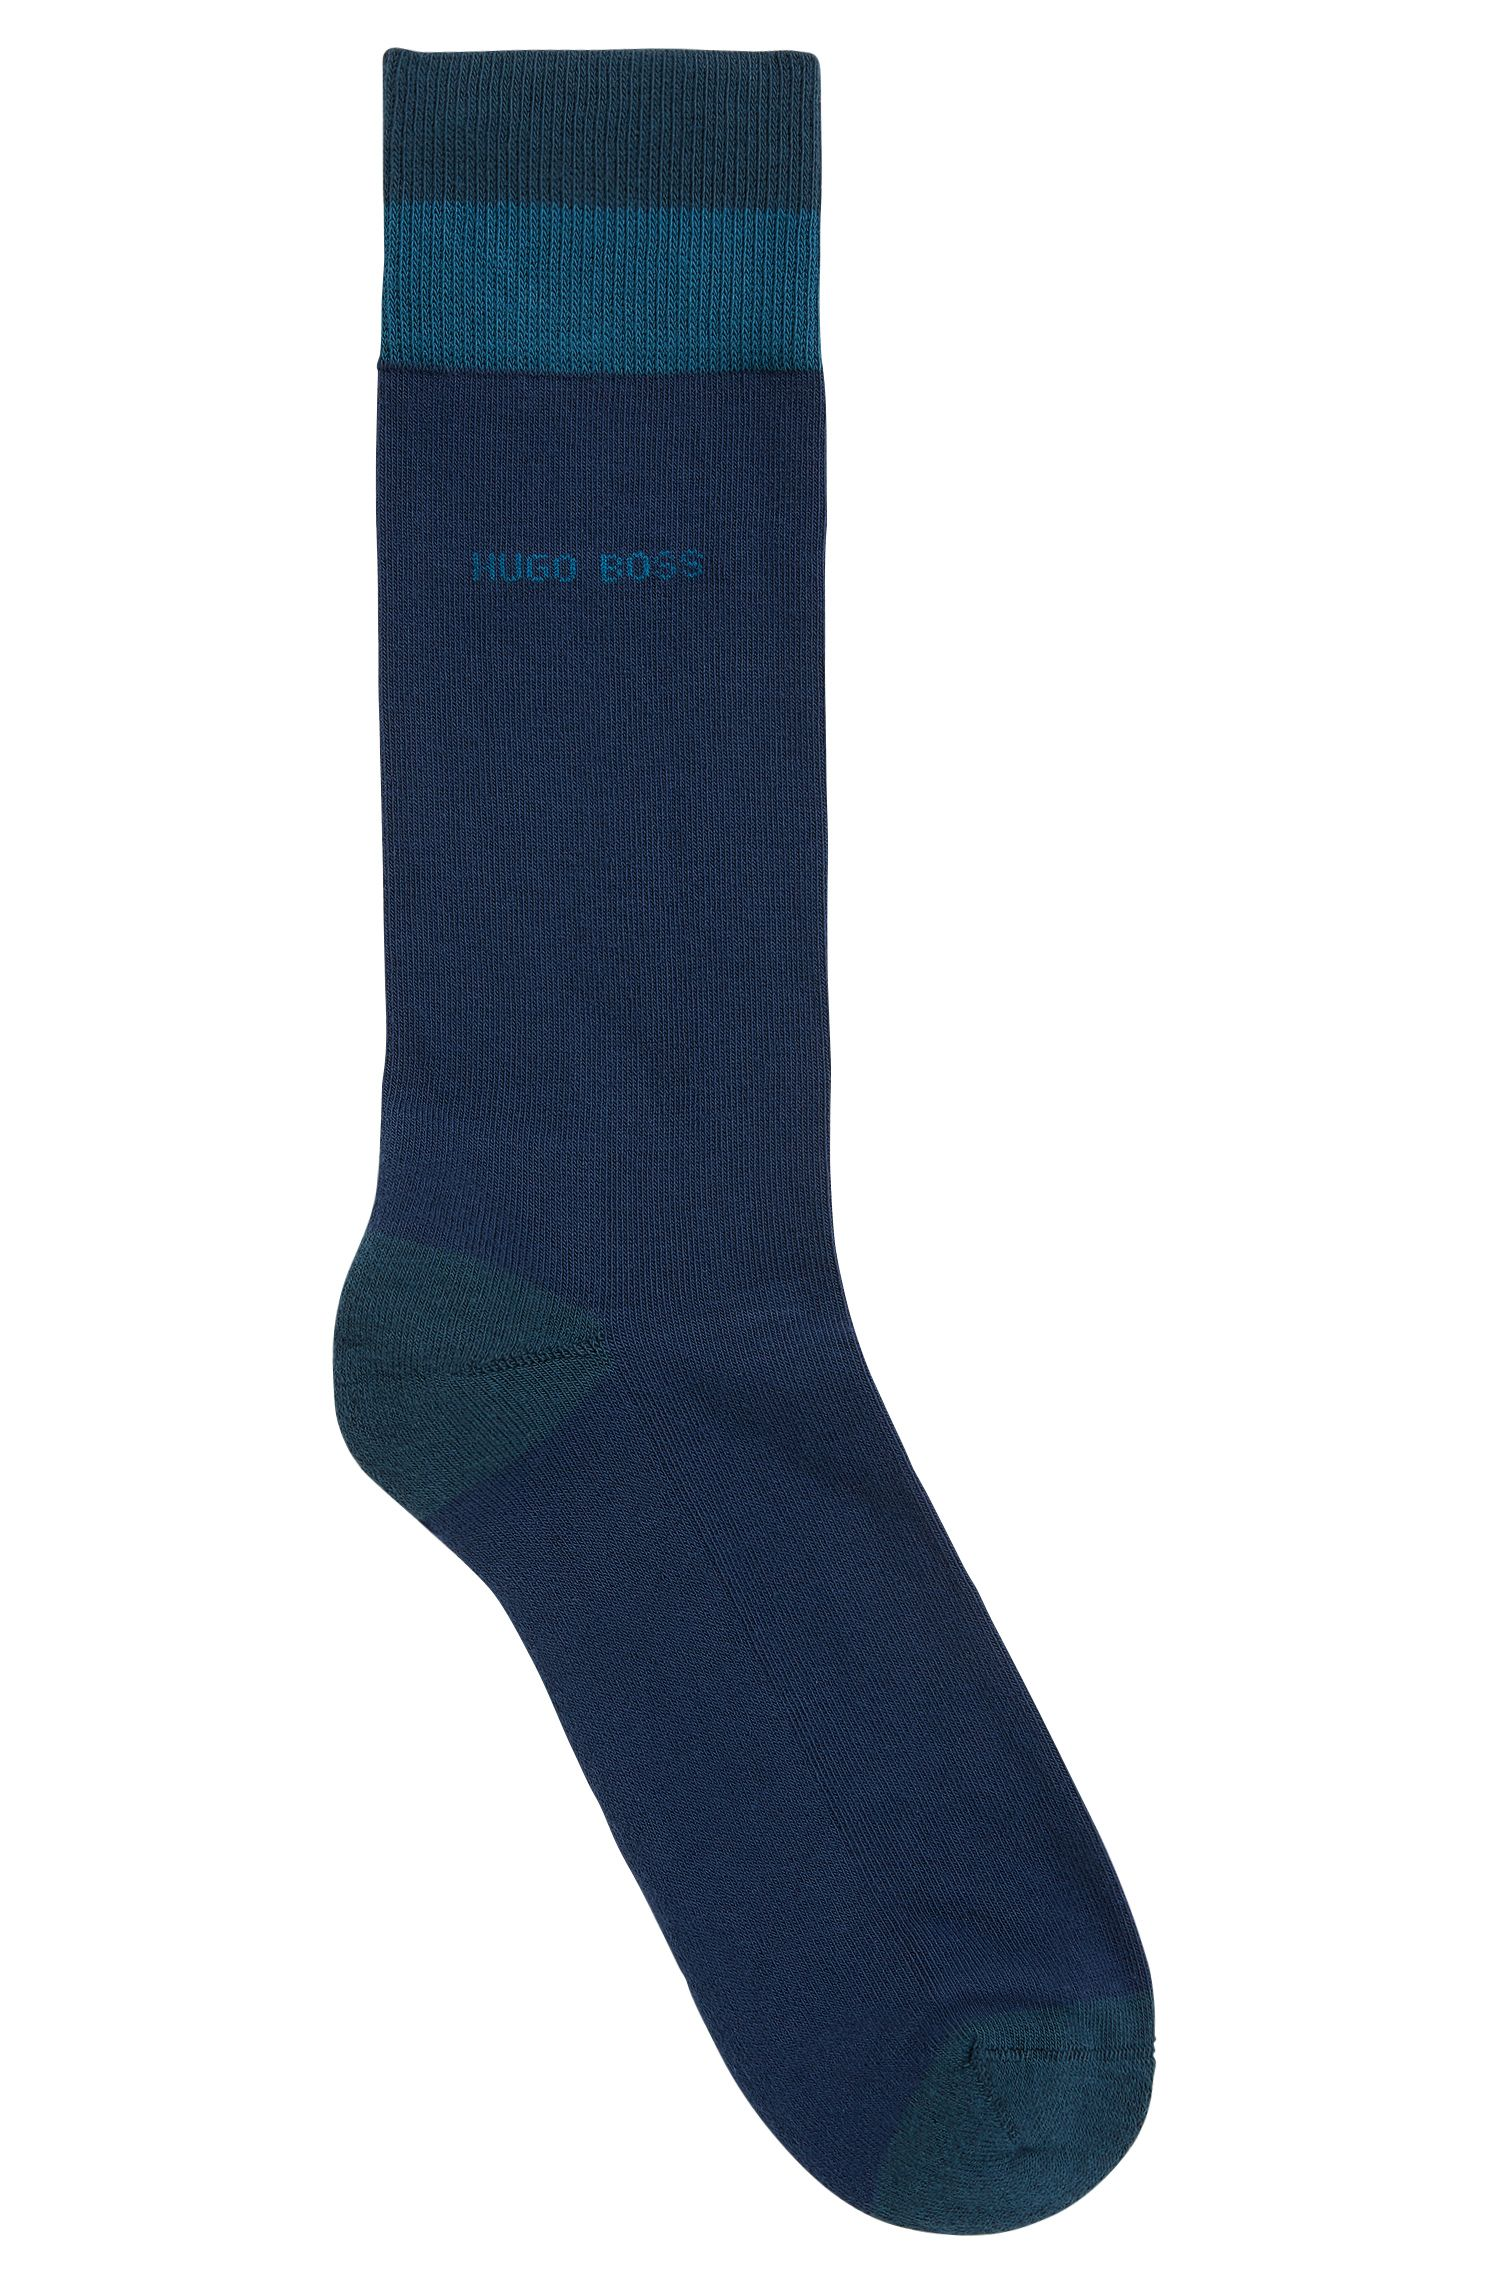 Regular length cotton-blend socks